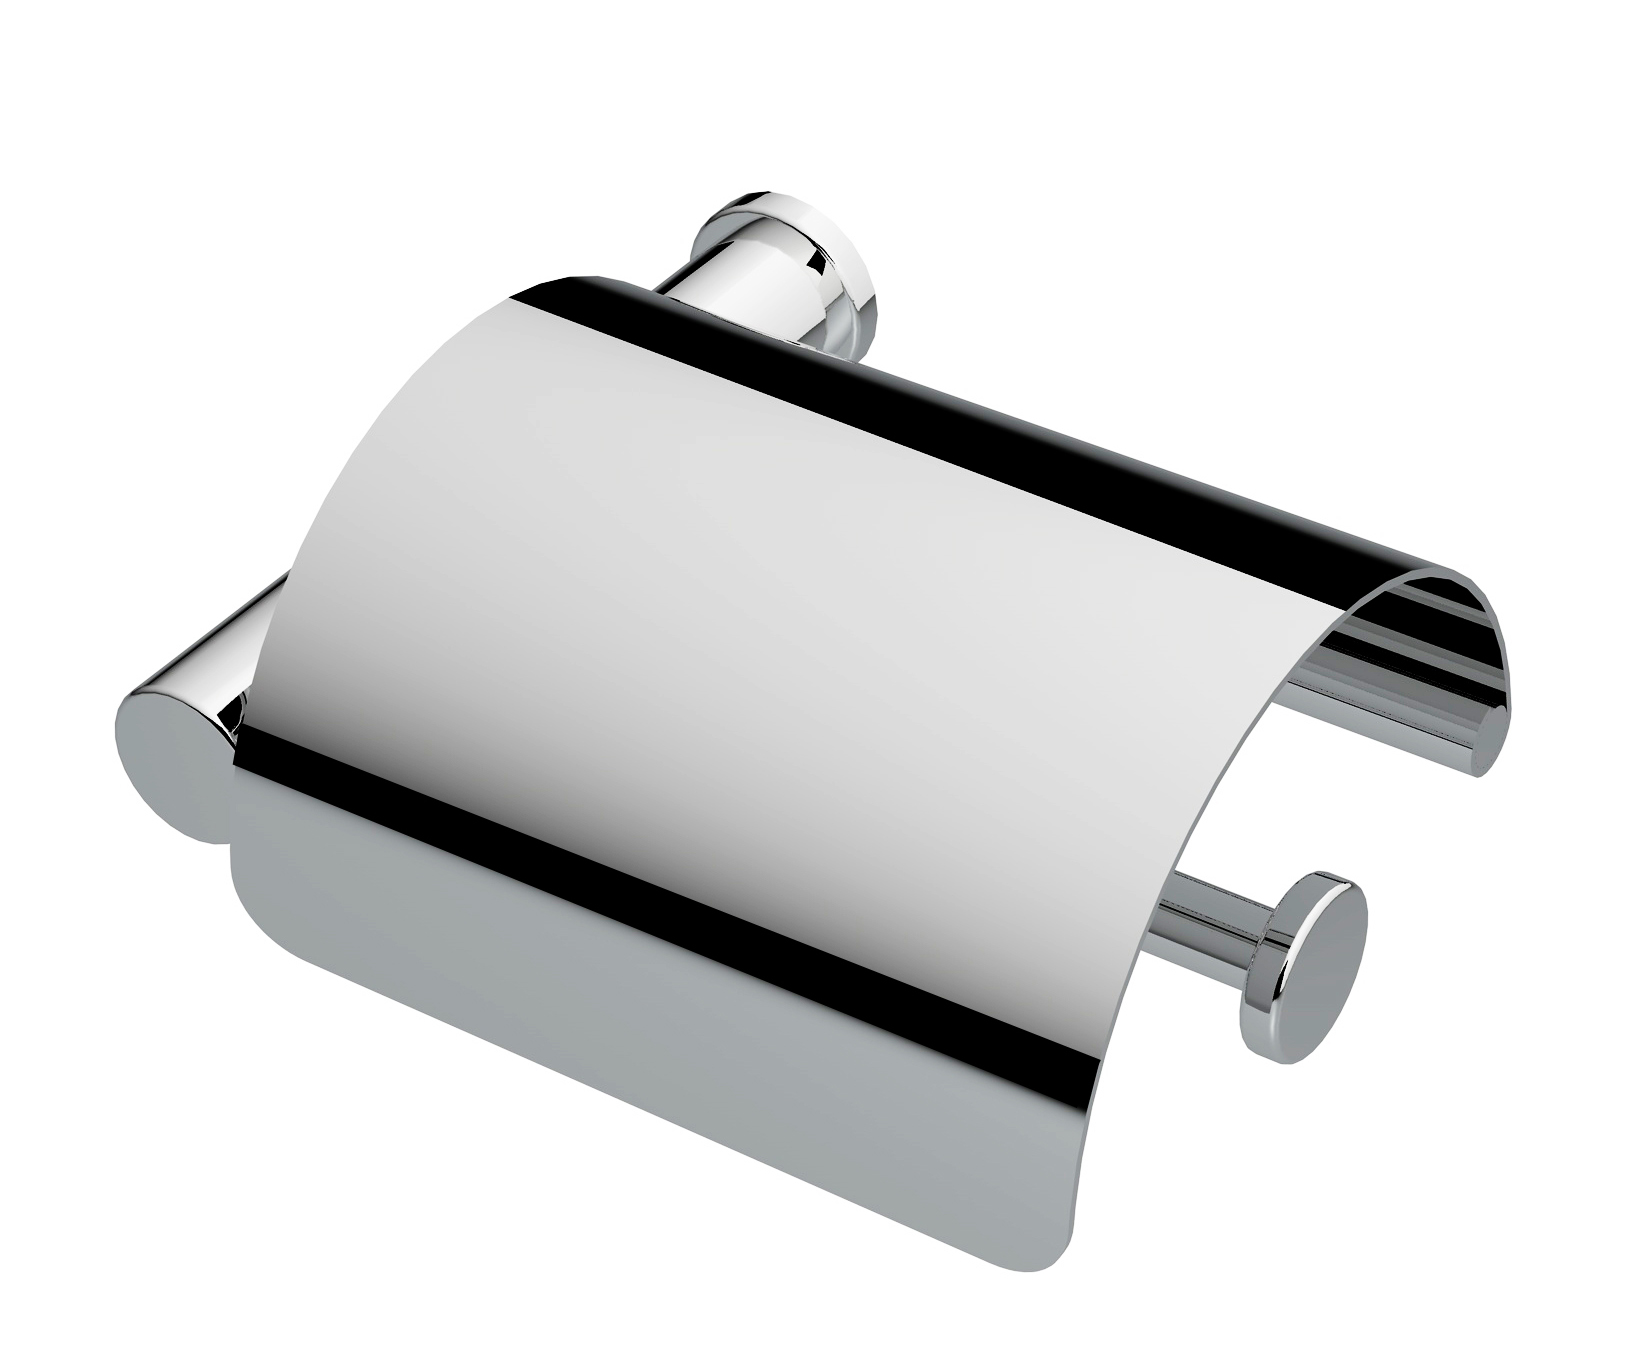 Toilet Roll Holders Archives PARISI Bathware and Doorware